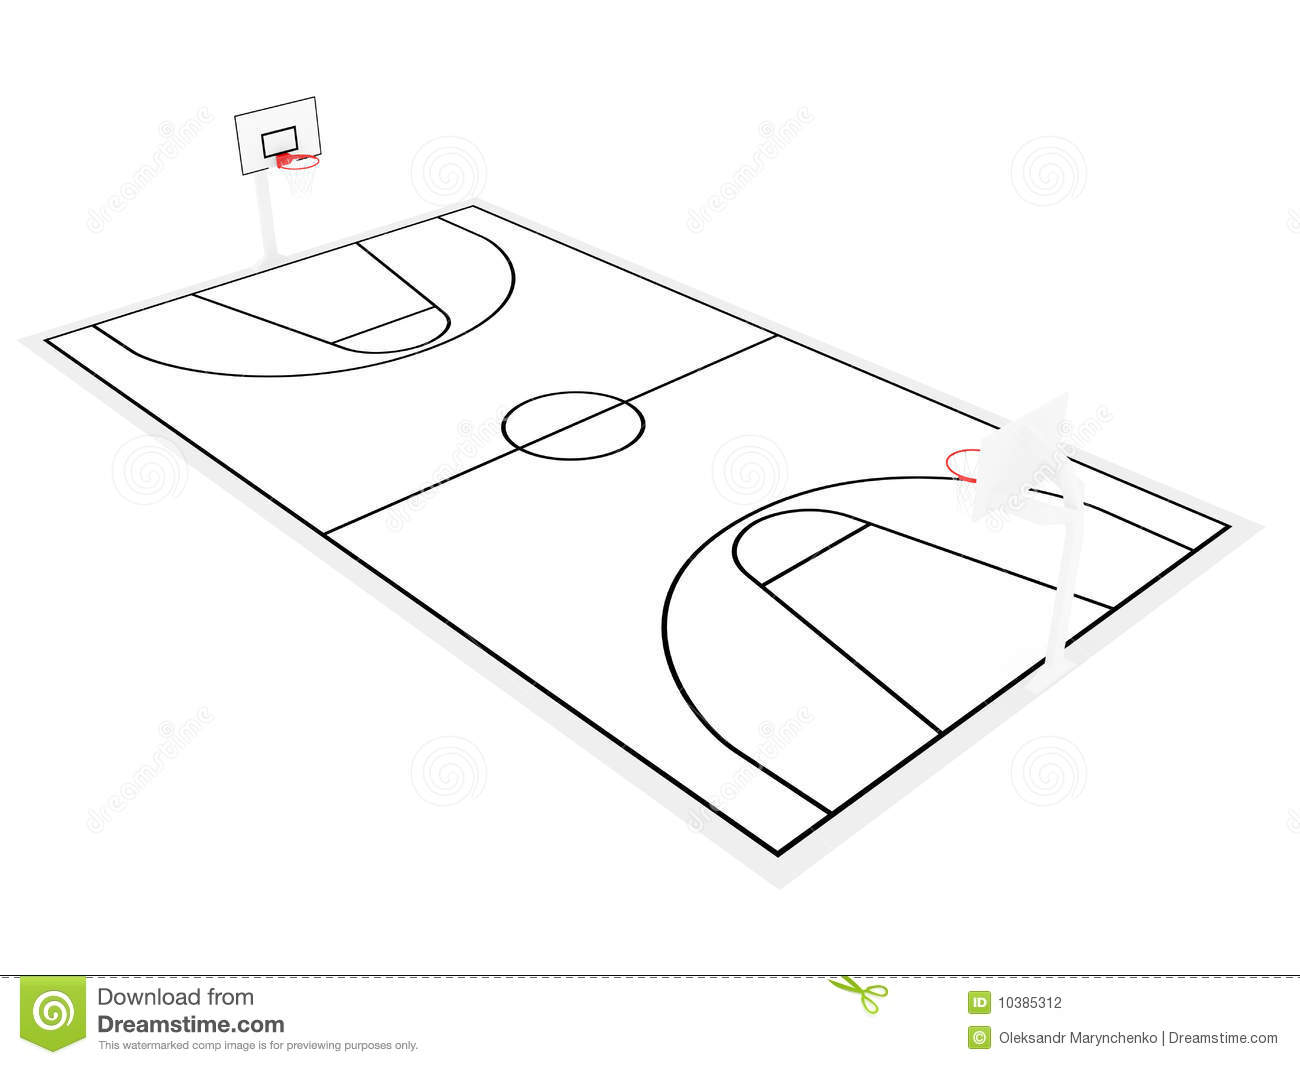 742558764294b9e8 Medical Office Layout Floor Plans Medical Office Floor Plan also Royalty Free Stock Photo End Image9782895 additionally Royalty Free Stock Photos Floor Plan Kindergarten Drawing St Image35140918 in addition Stock Photos Crack Vector Cracks Floor Used As Illustrations Image40817883 likewise Aam RS0174 0001. on a 2 z floor plans